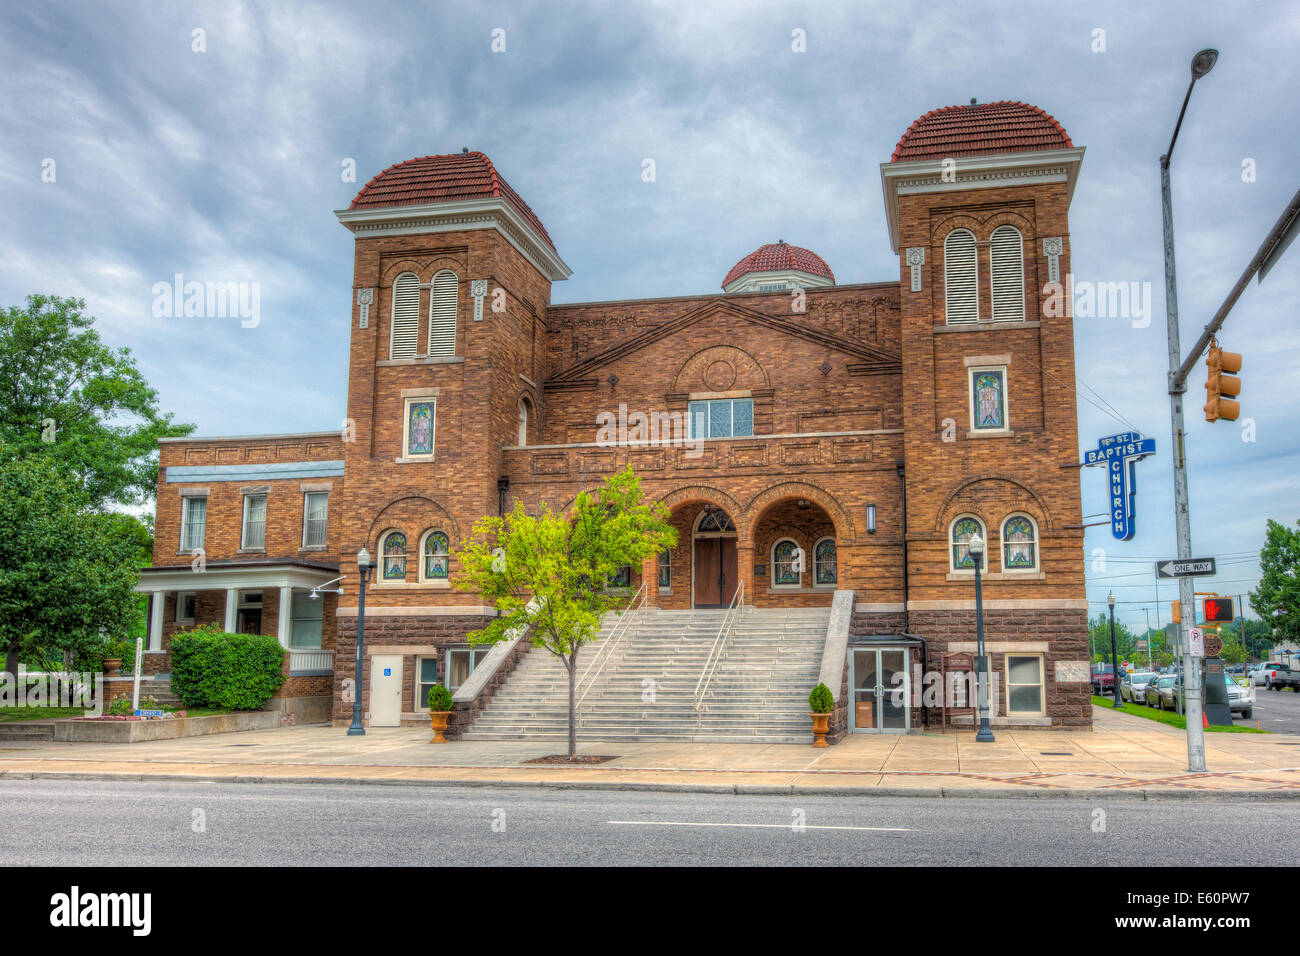 The 16th Street Baptist Church was the site of the racially motivated bombings in 1963 in Birmingham, Alabama. Stock Photo